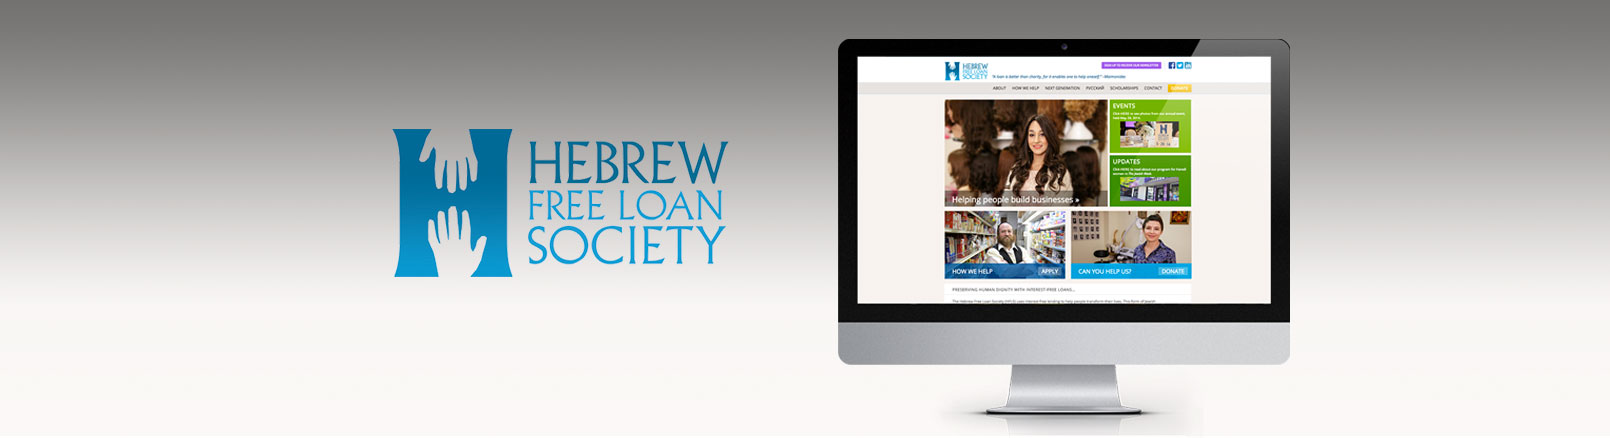 Hebrew Free Loan Society